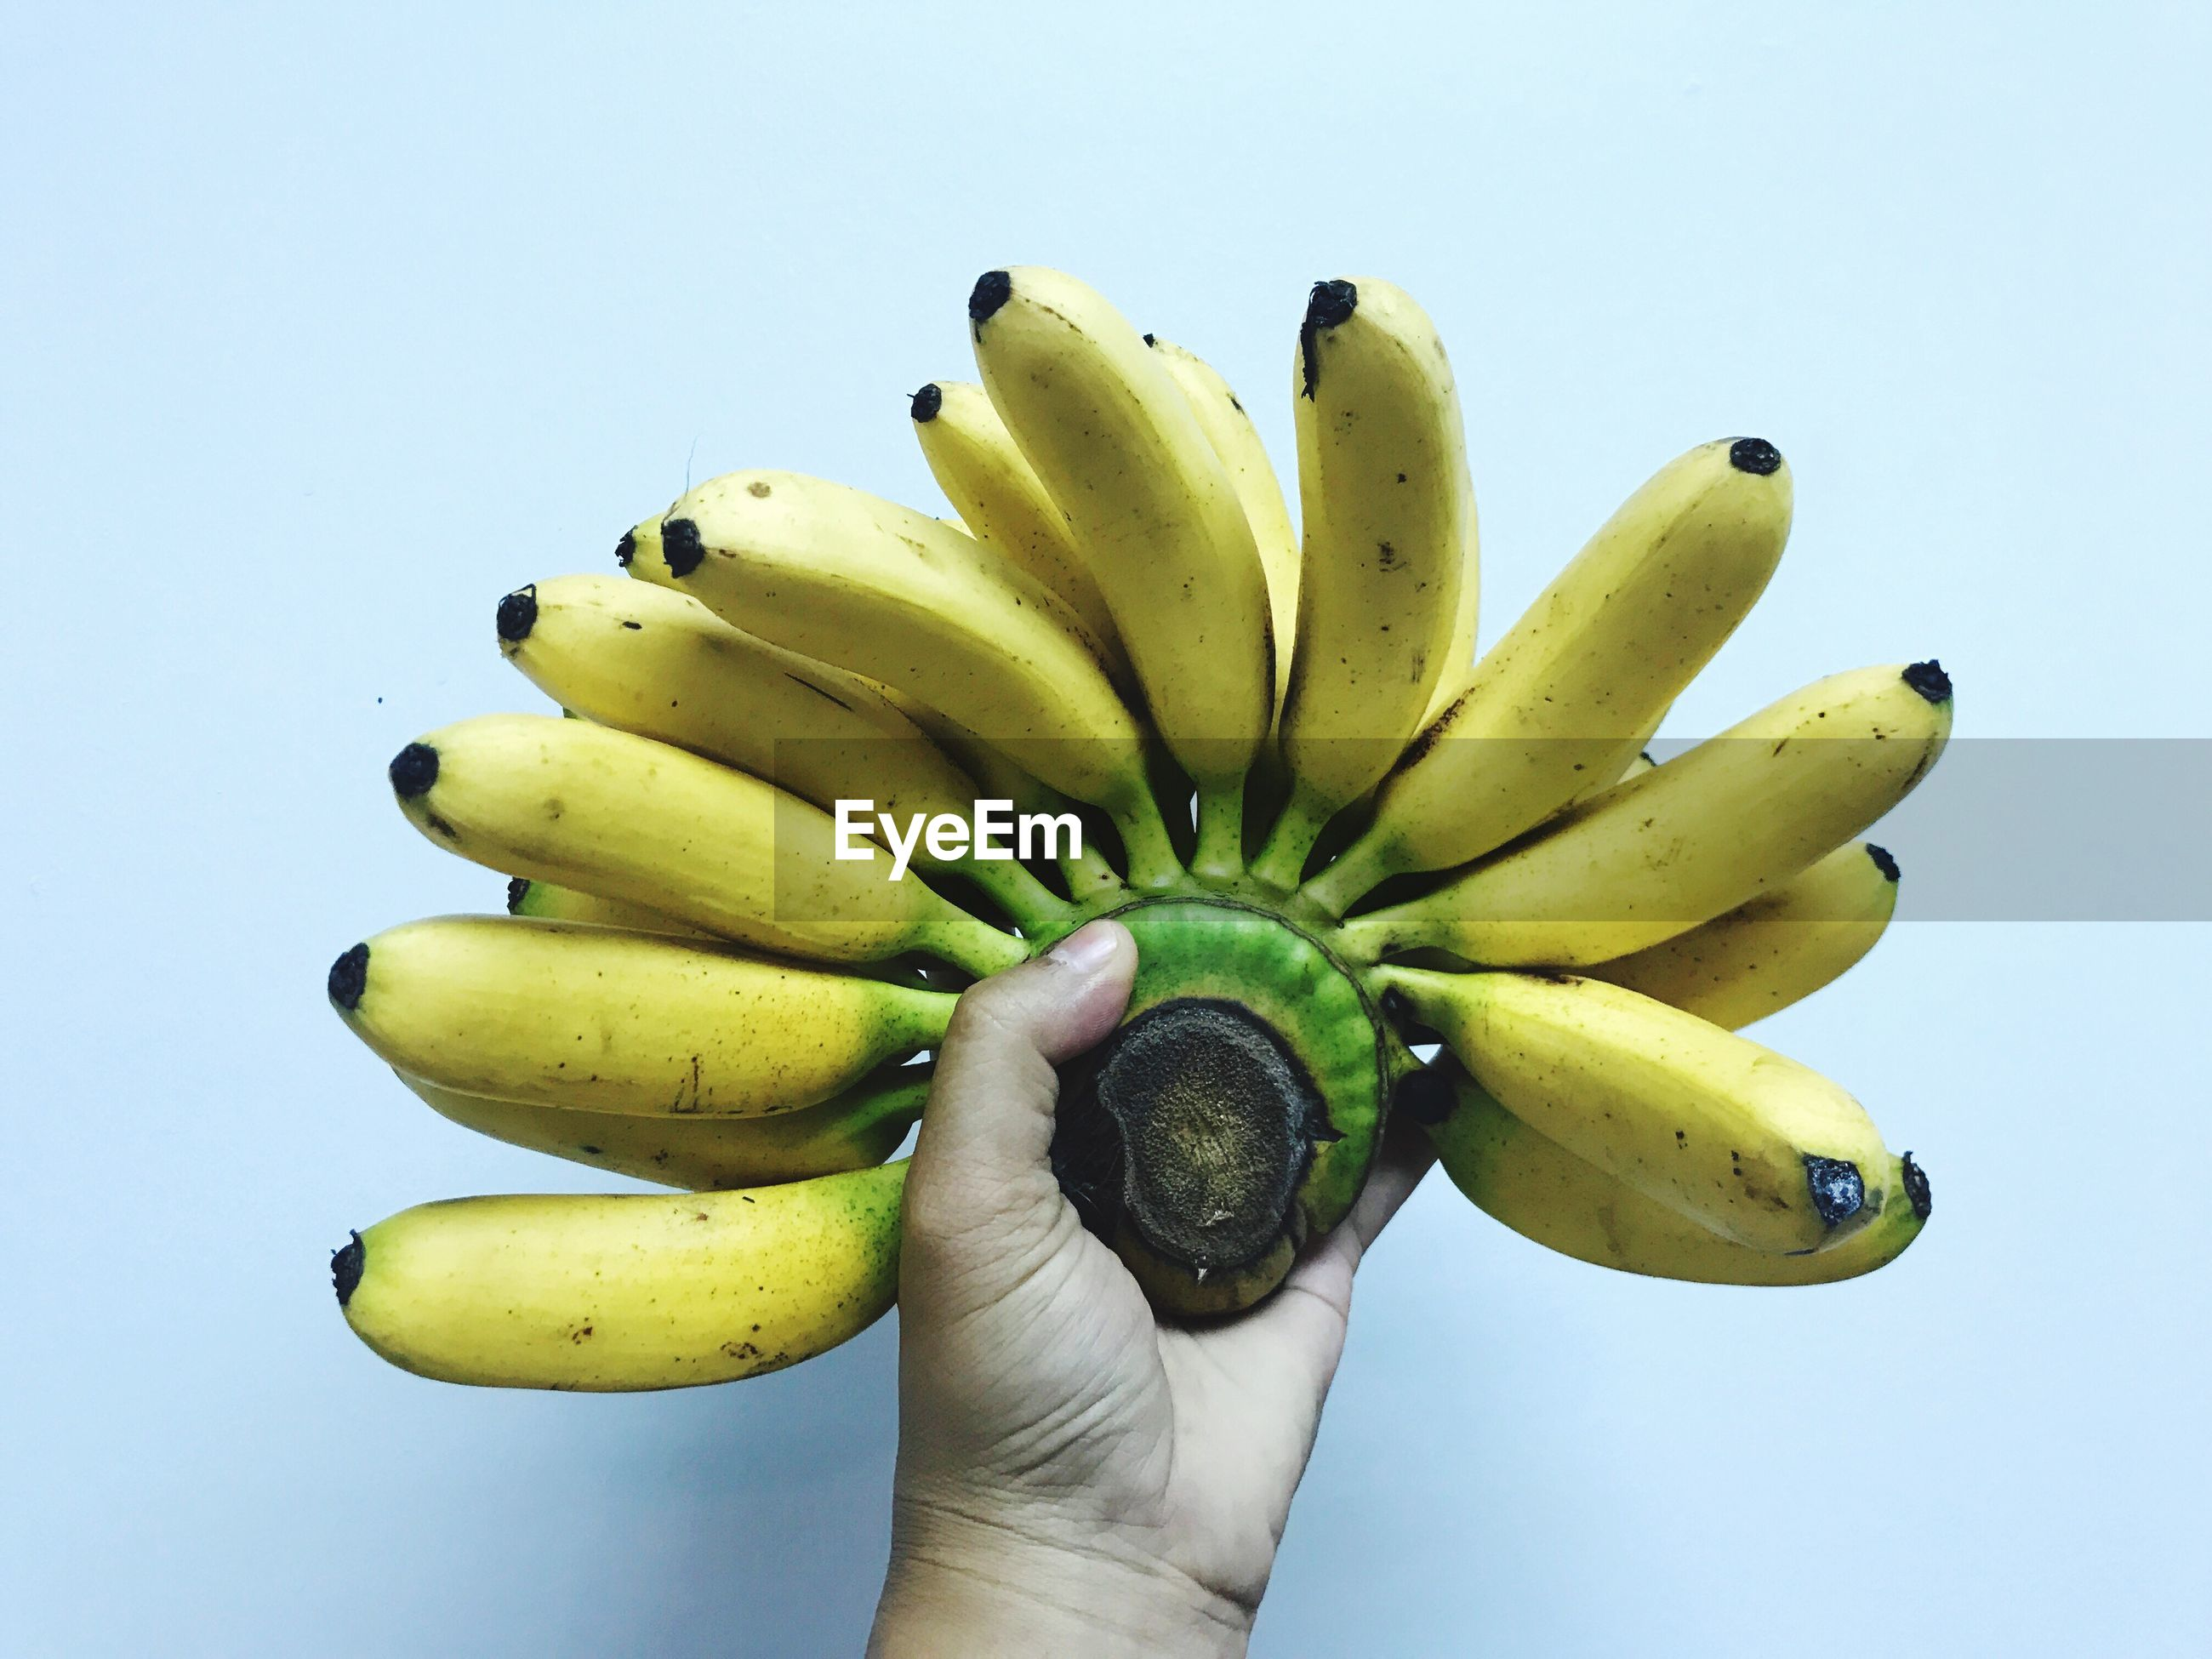 Cropped hand holding bananas against white background